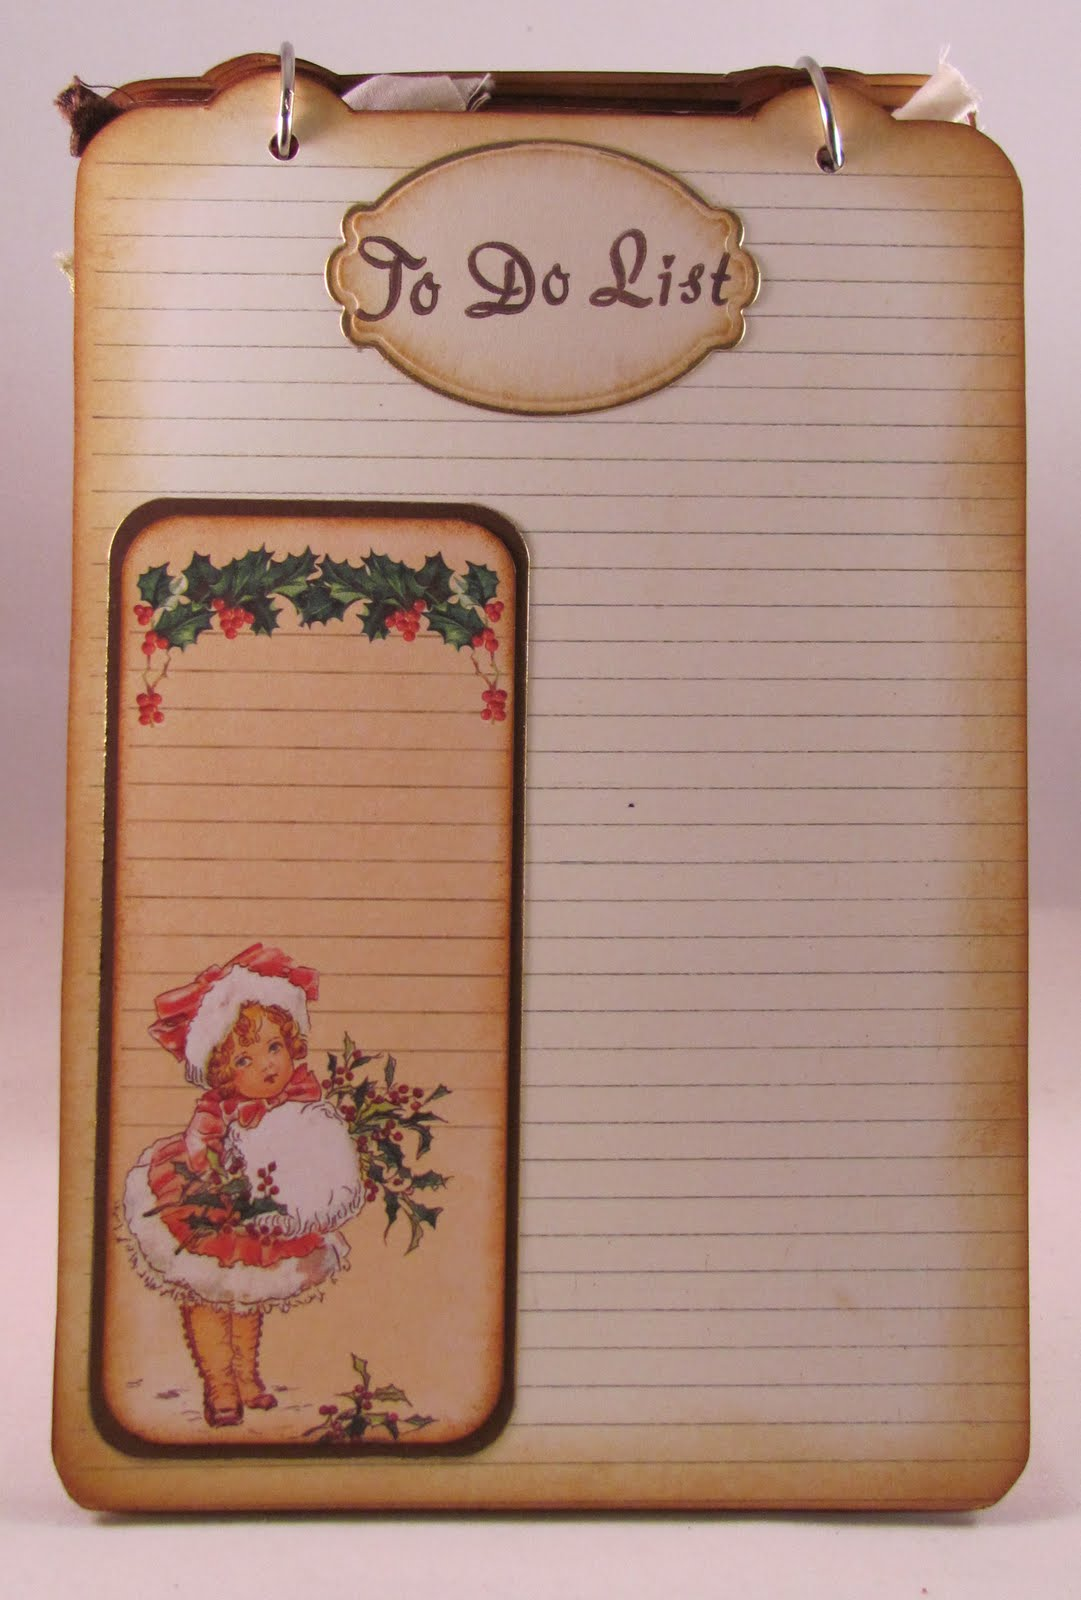 Christmas To Do List Pictures Wallpapers